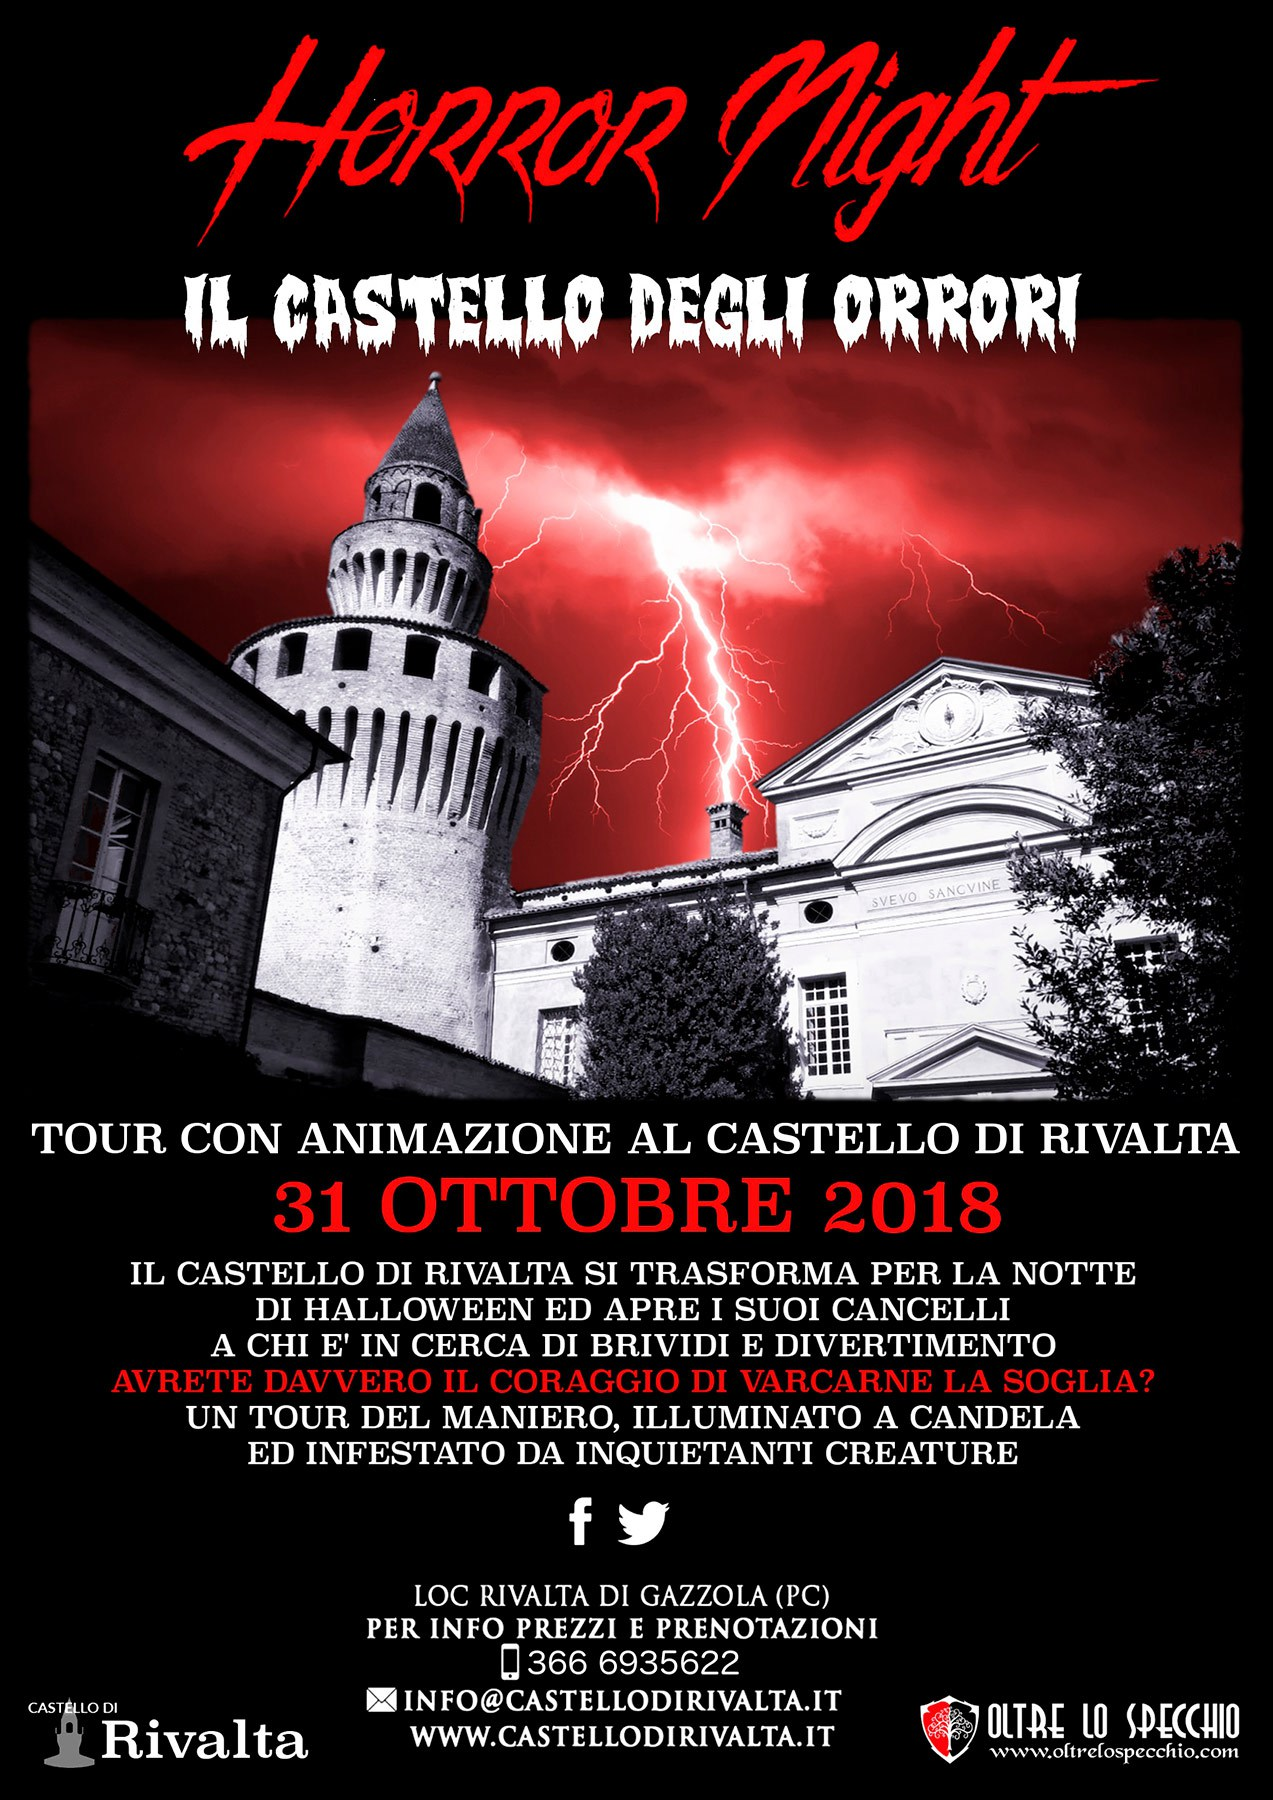 Horror Night al Castello di Rivalta